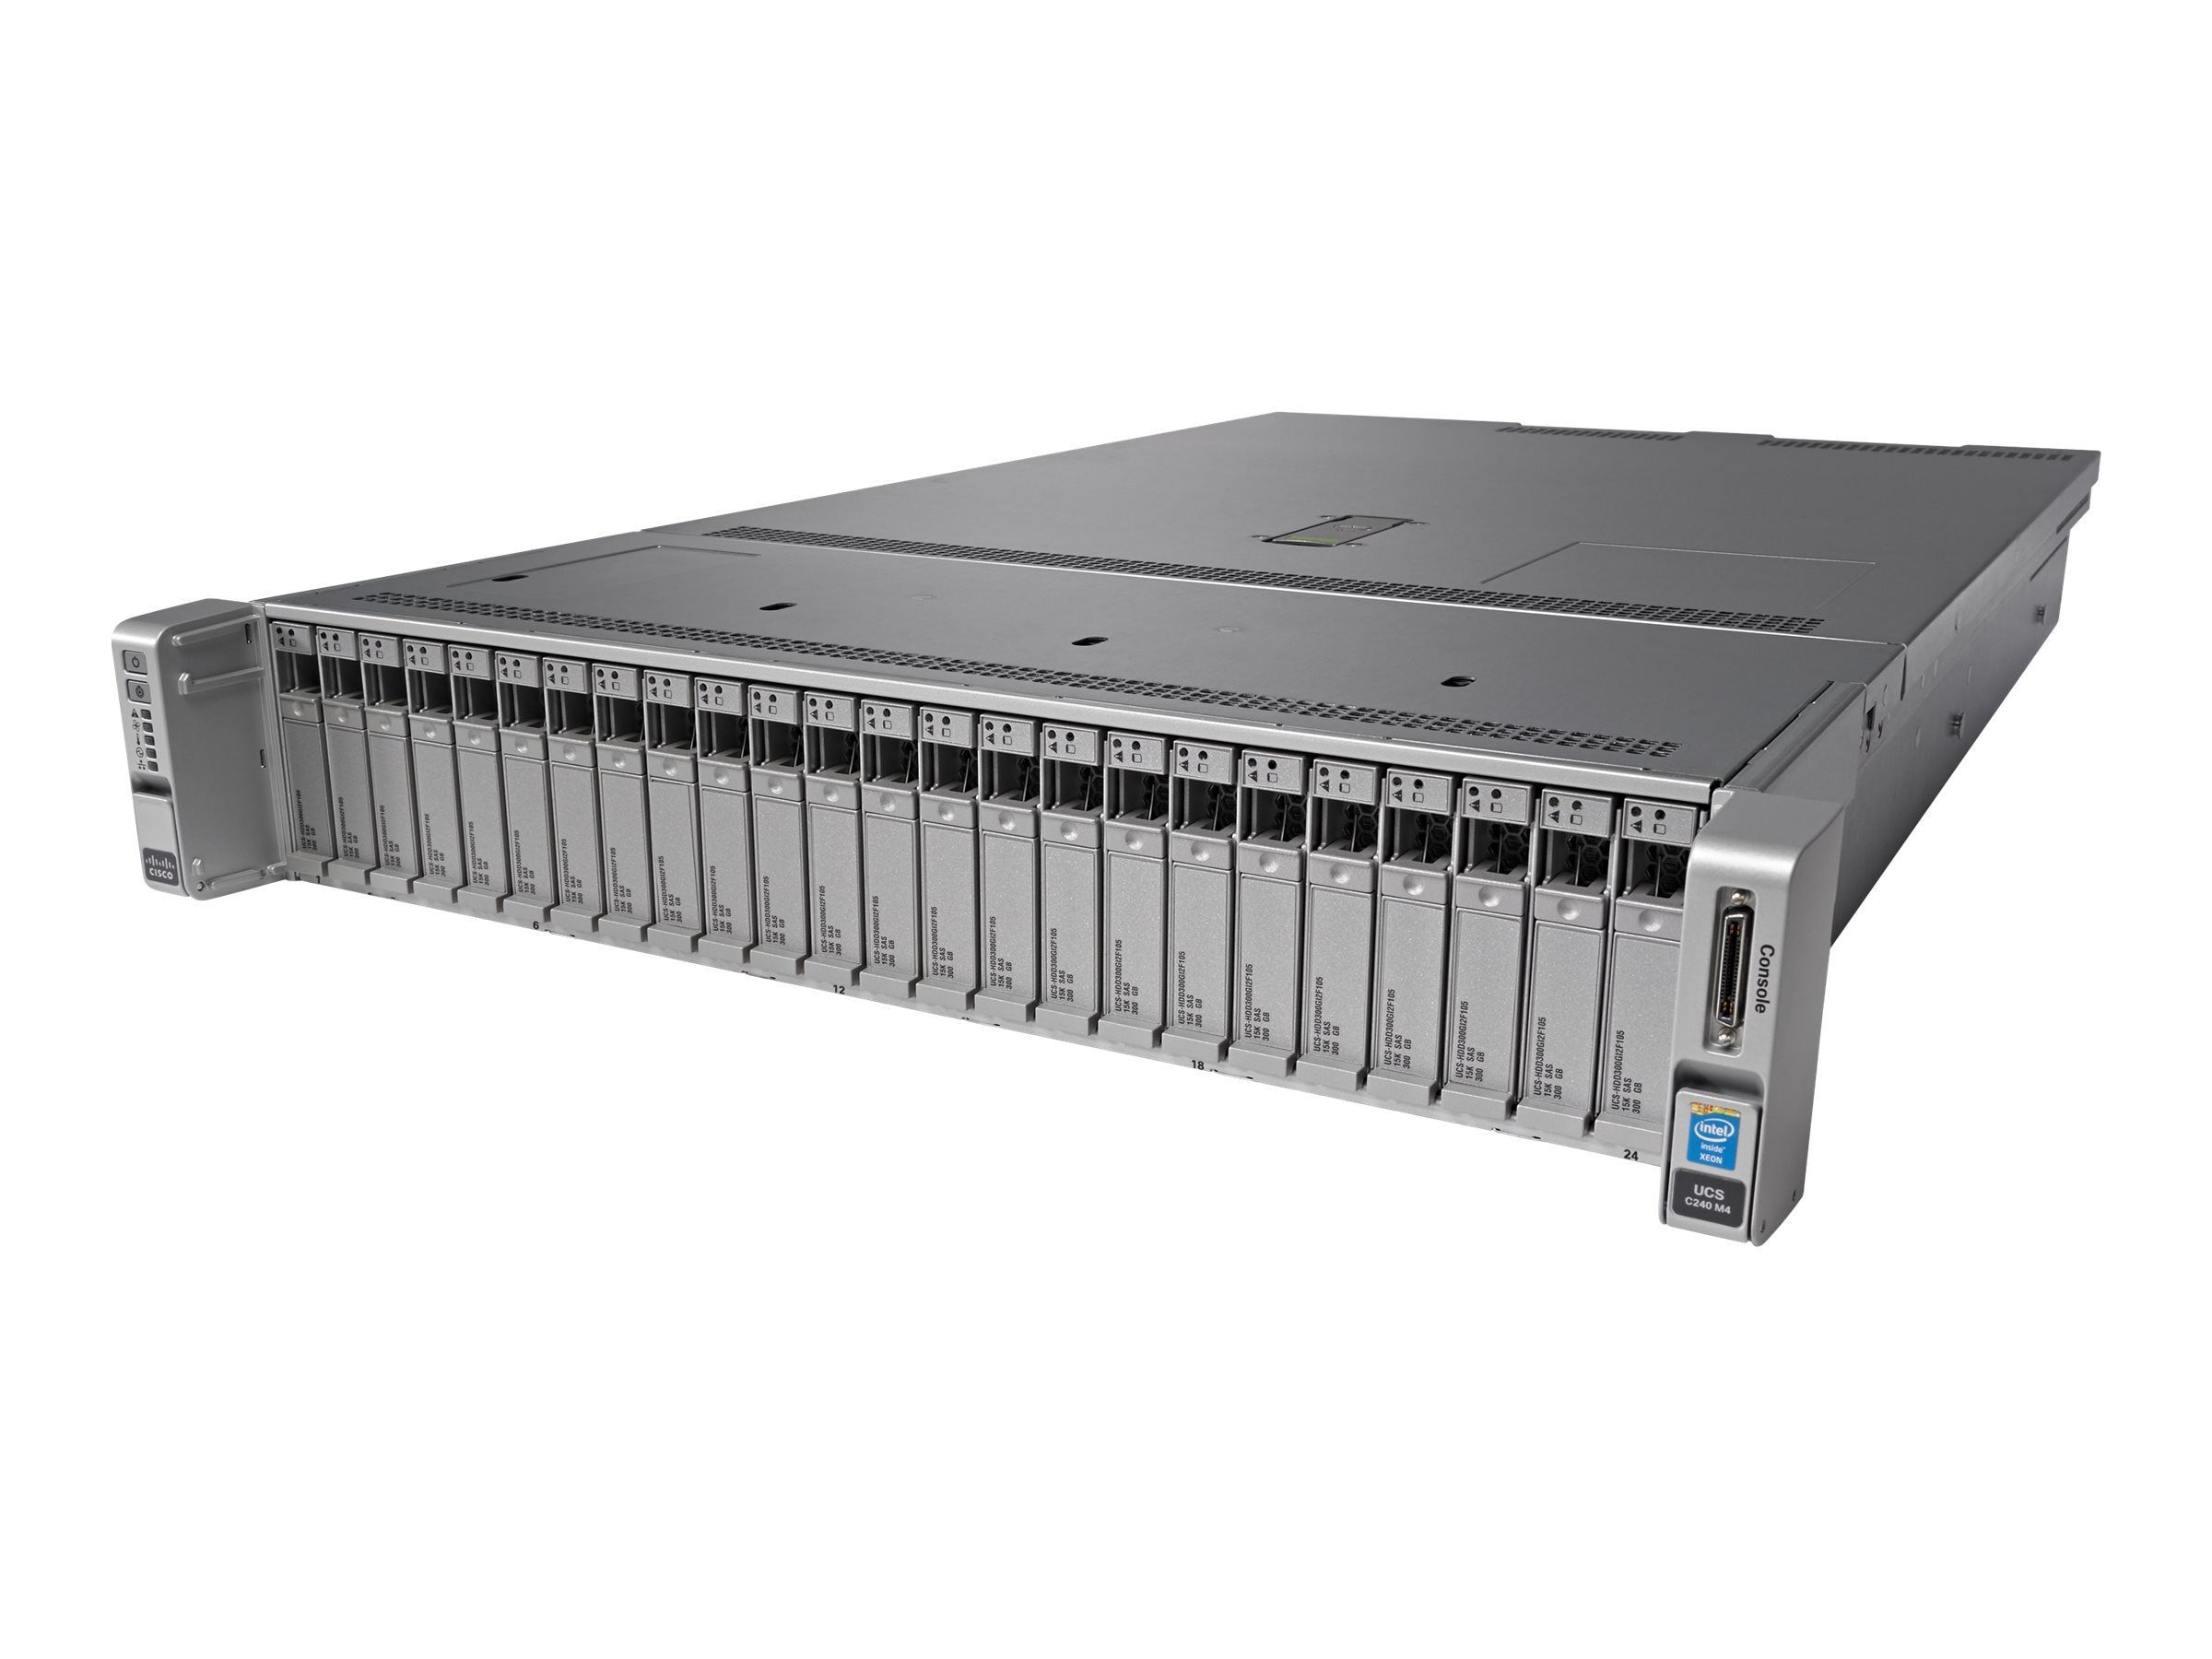 Cisco UCS C240 M4S (2x)Xeon E5-2630 v4 32GB MRAID 32GB SD 2x1200W Rails